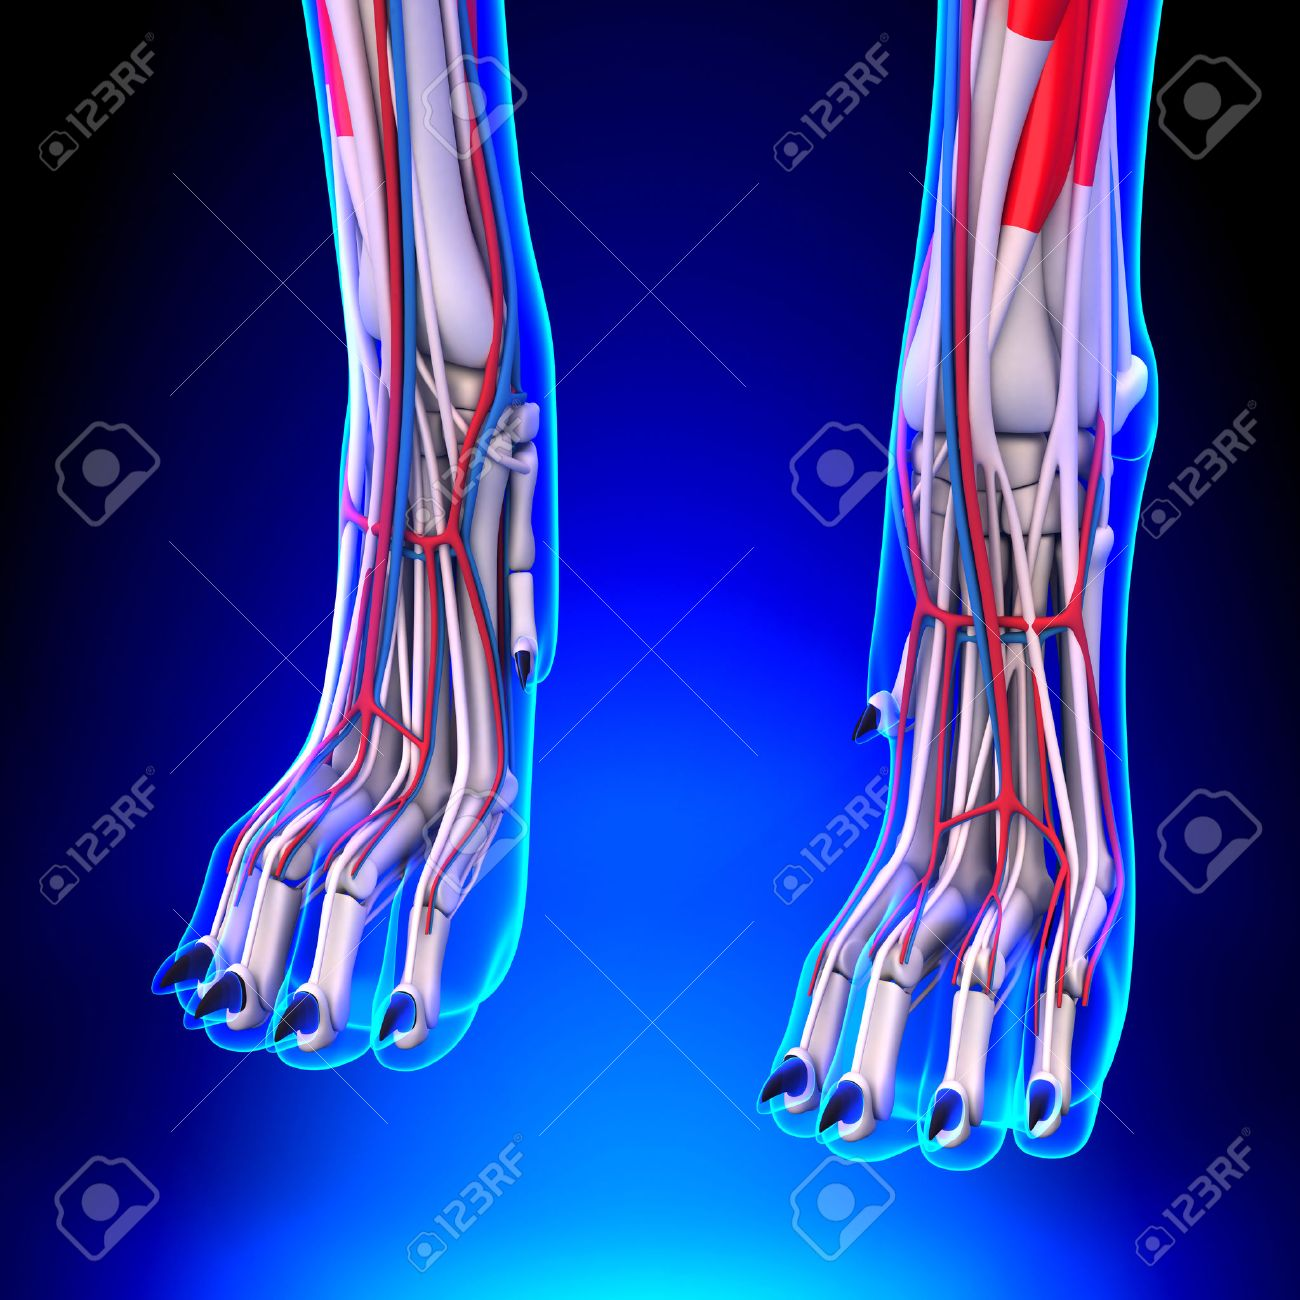 Dog Front Legs Anatomy With Circulatory System Stock Photo, Picture ...